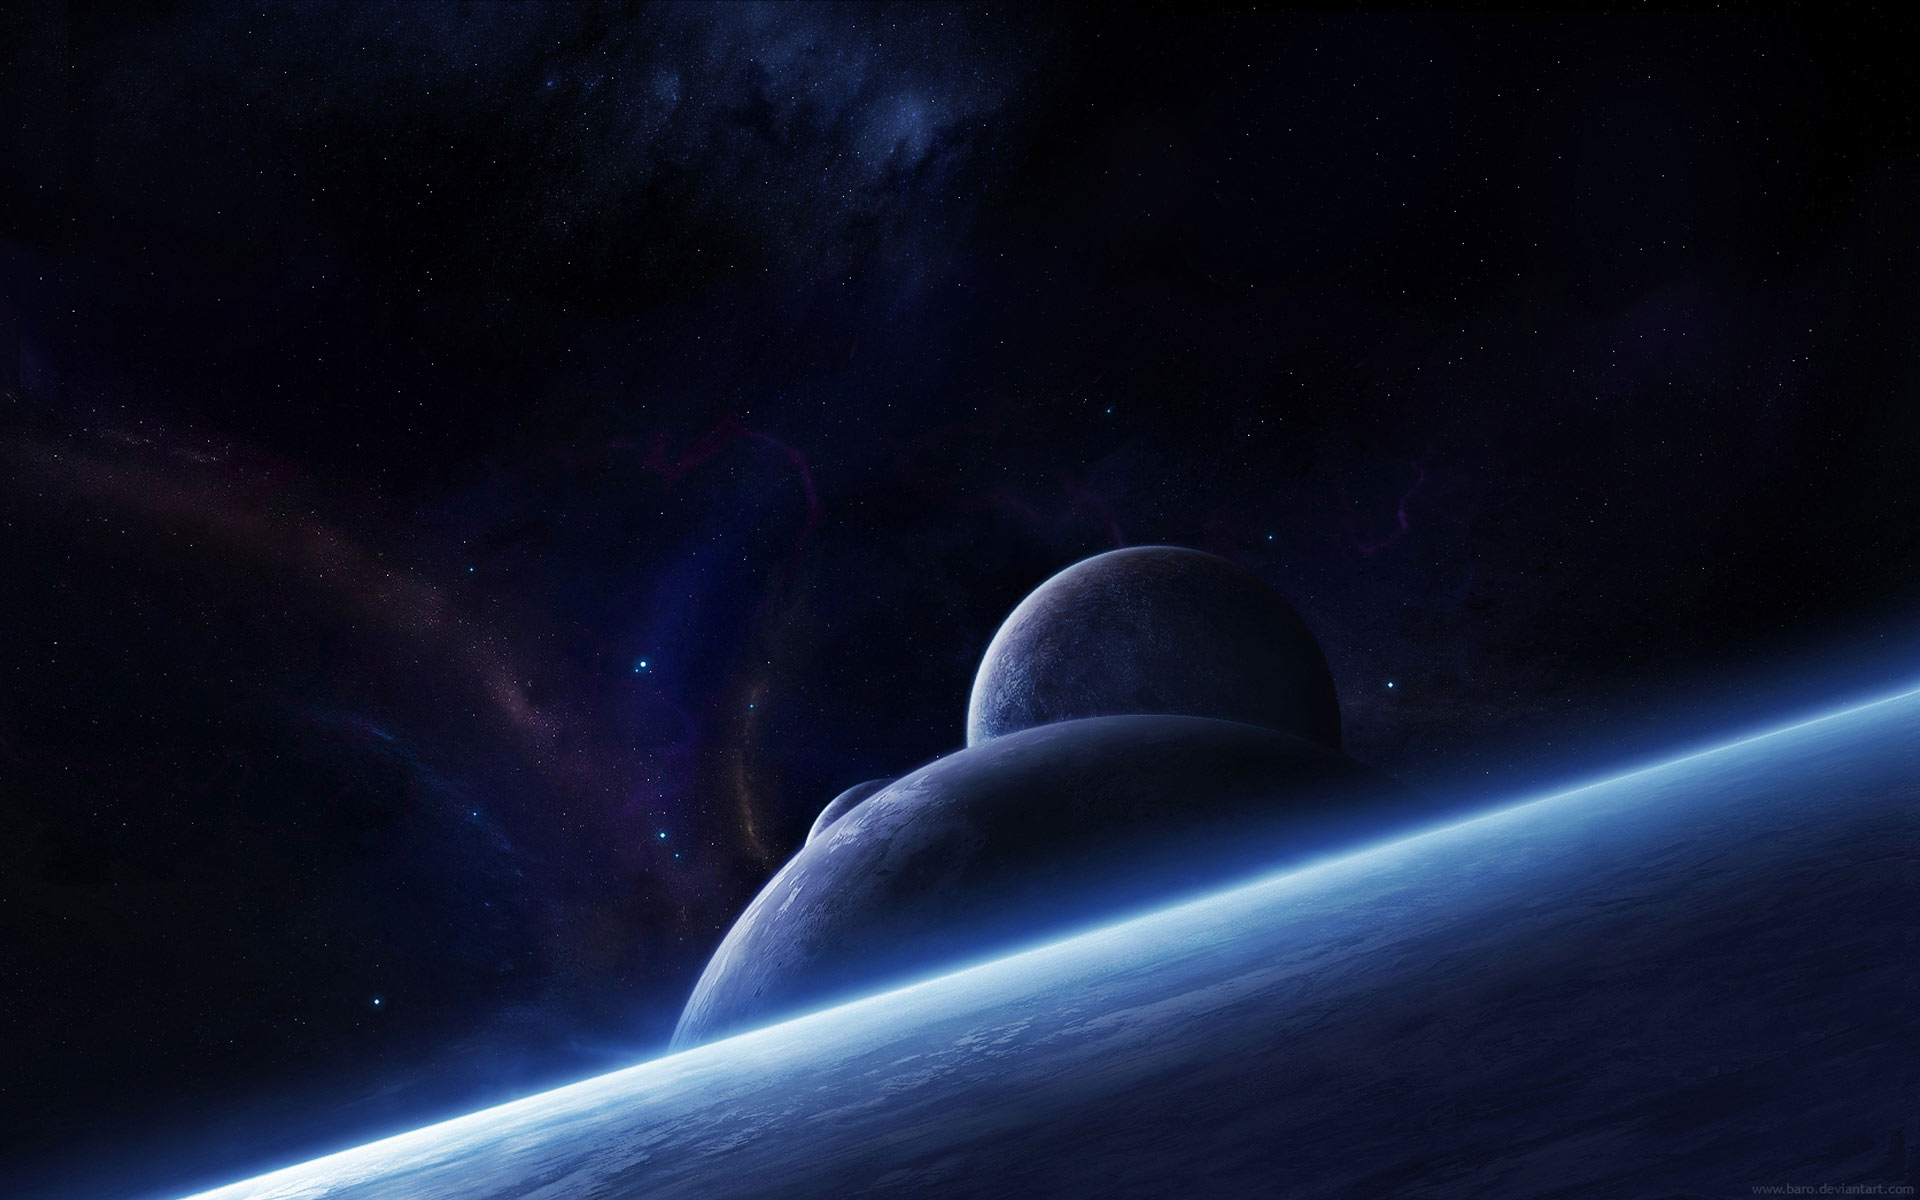 Windows 7 Planets Wallpapers Windows 7 Planets Stock Photos